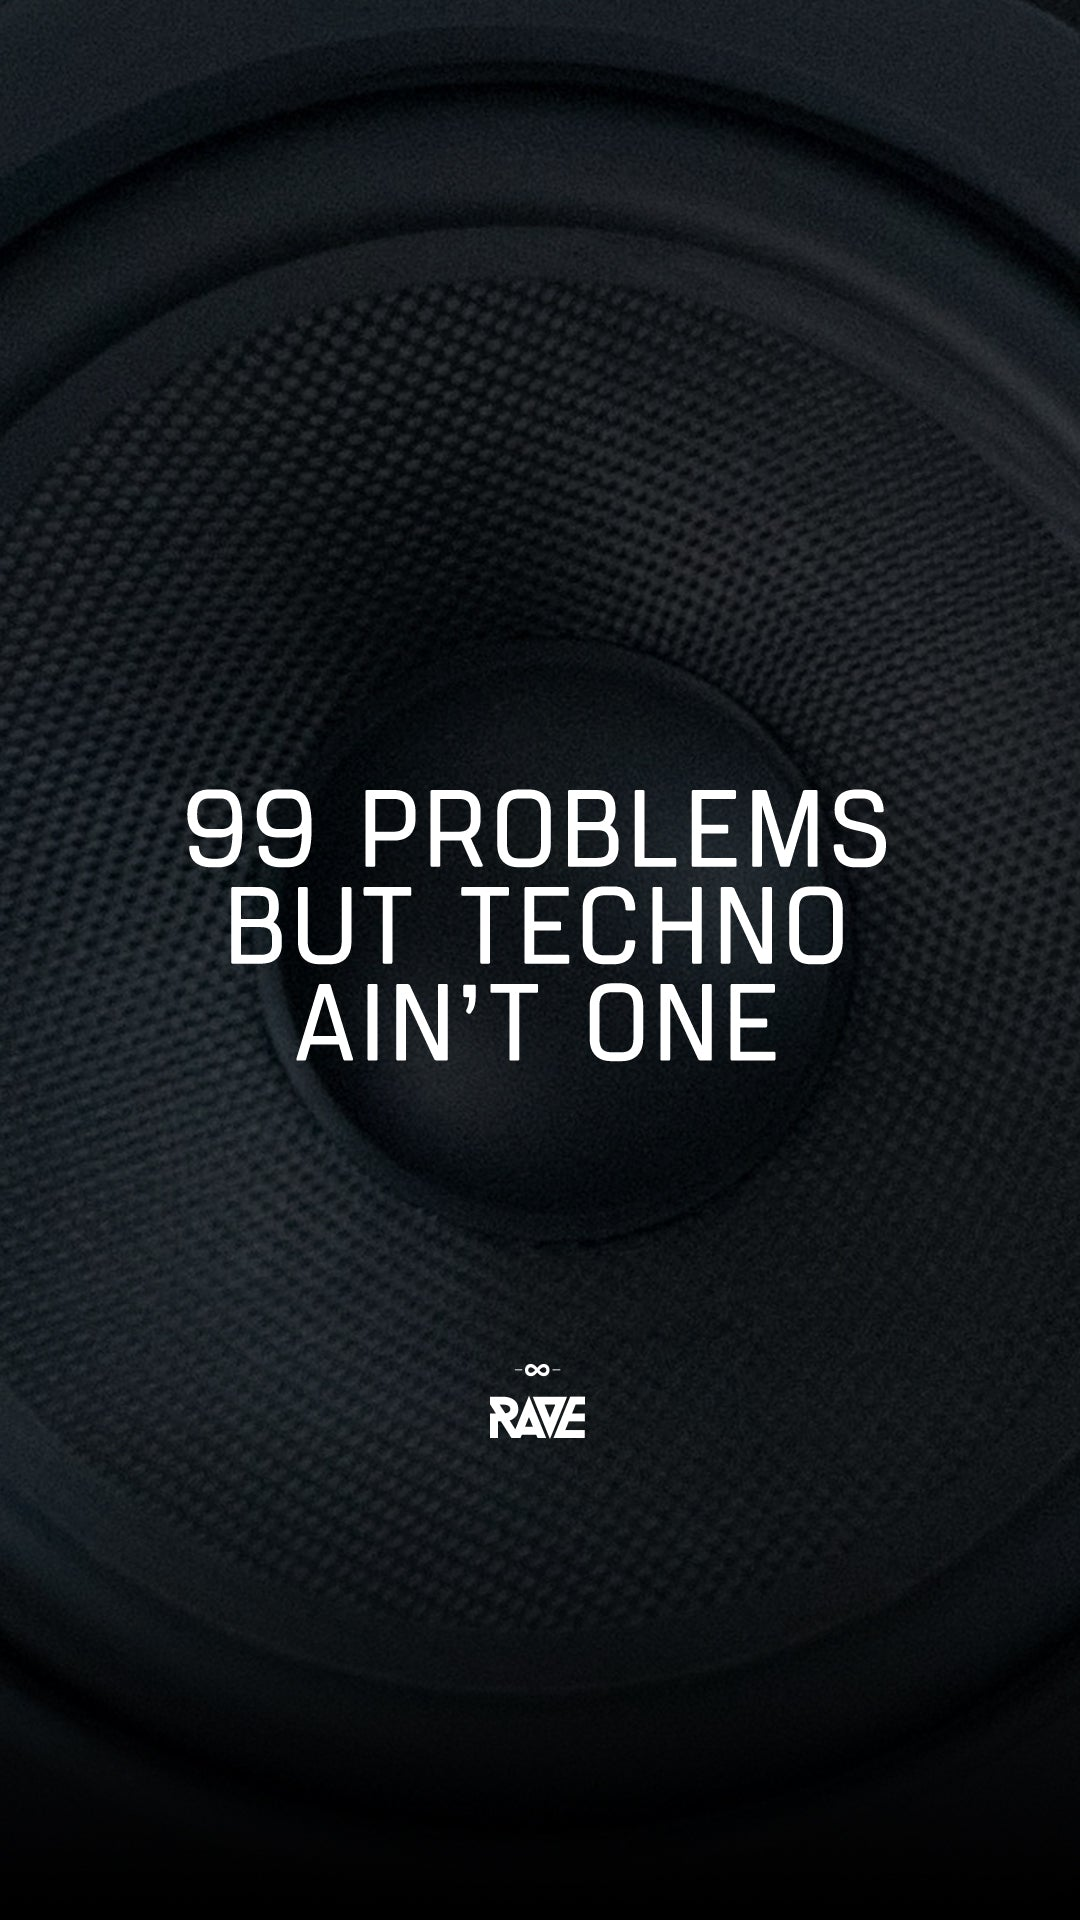 99 Problems but Techno ain't one Wallpaper